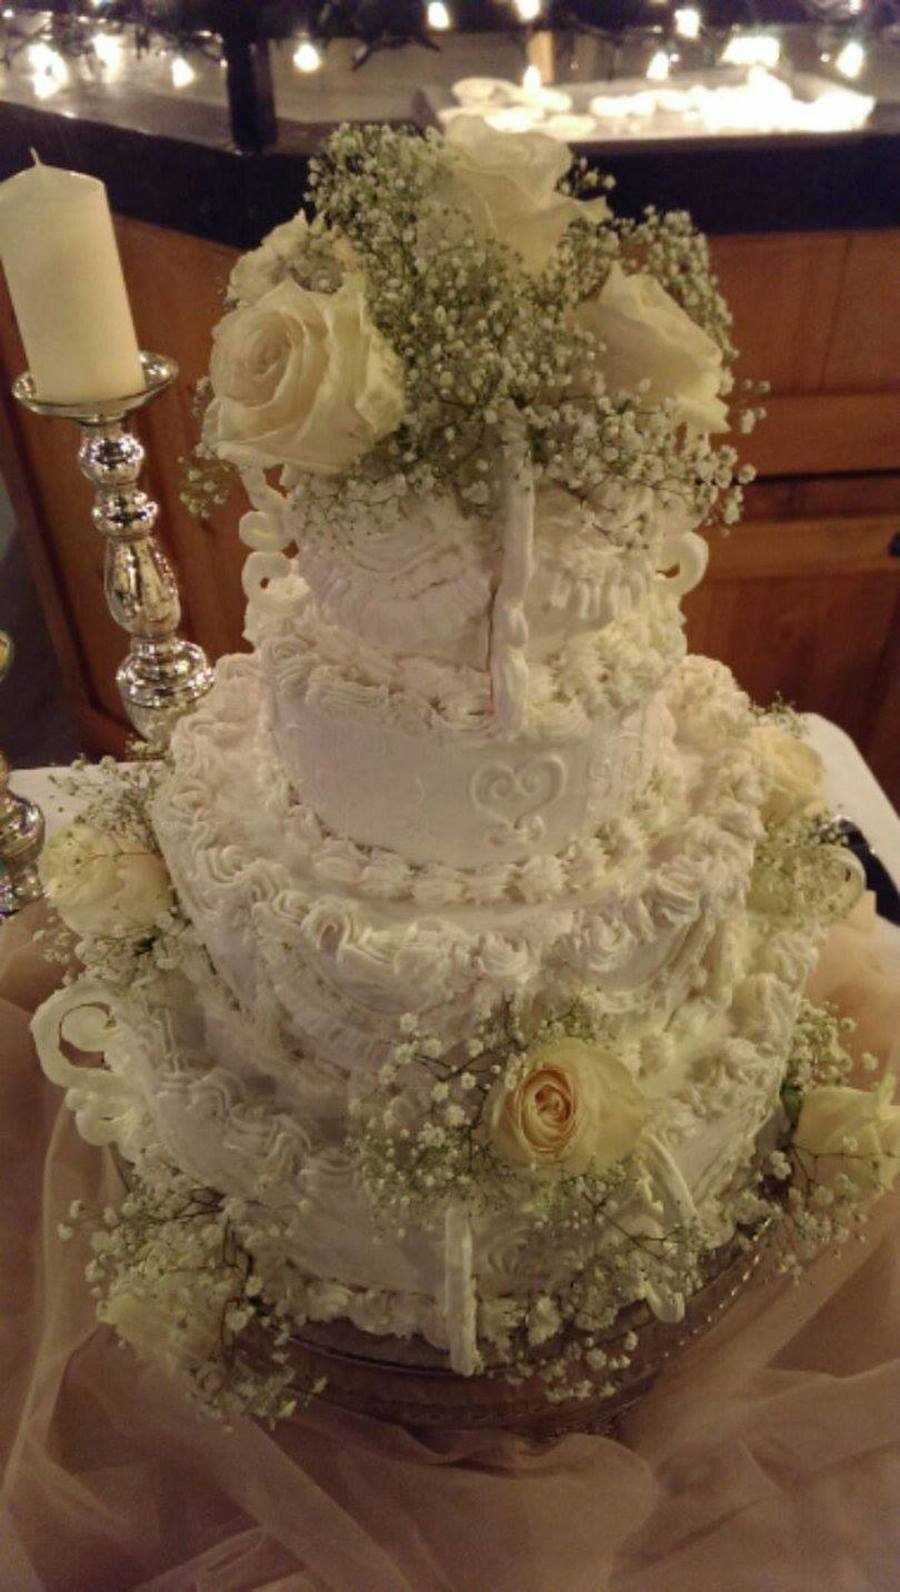 This Beautiful Wedding Cake Is Adorned With Flowers And